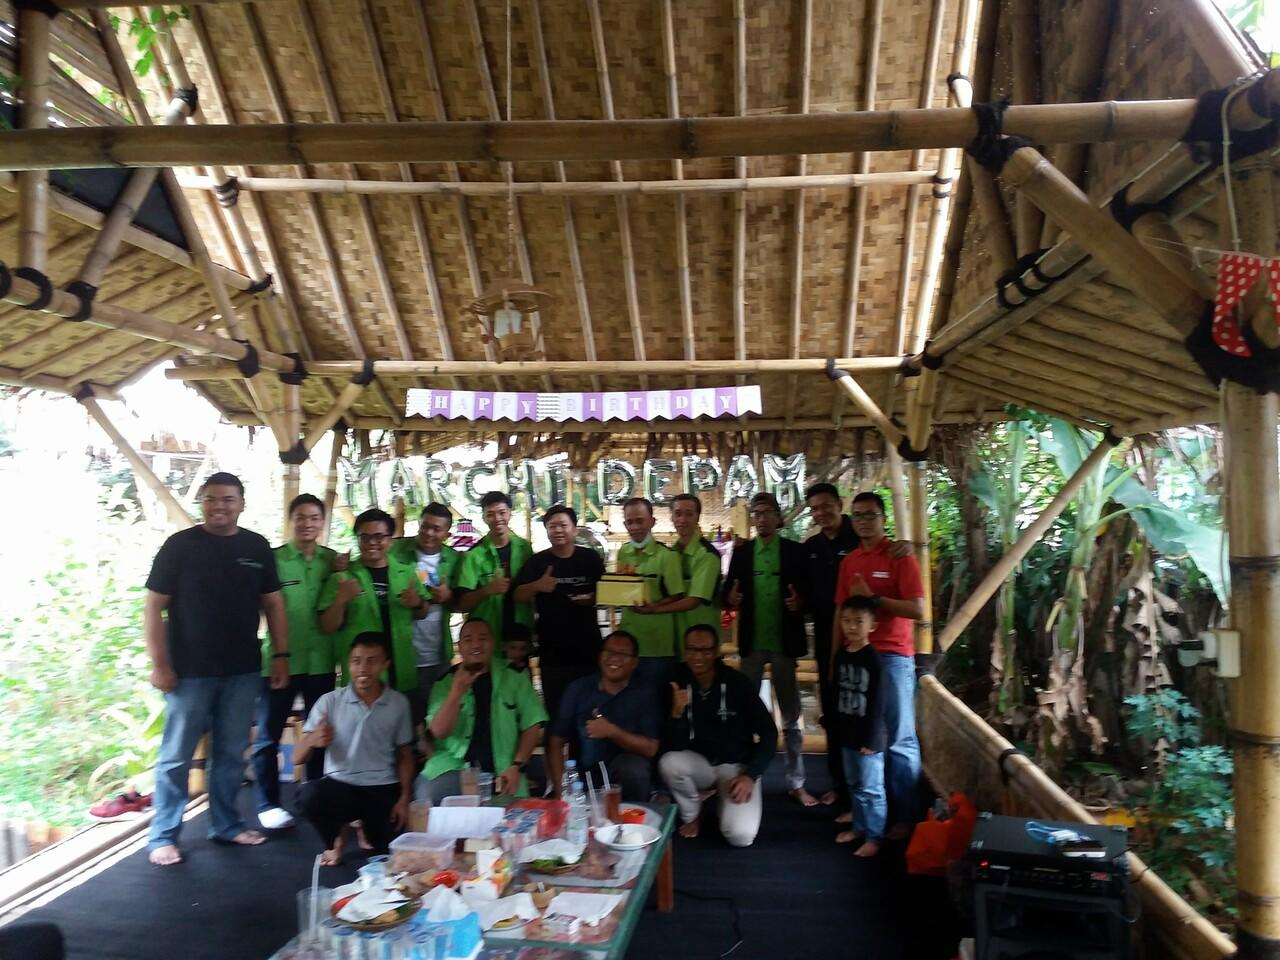 | March-I DEPAM | Nissan March Indonesia - Chapter Depok Pamulang on Kaskus